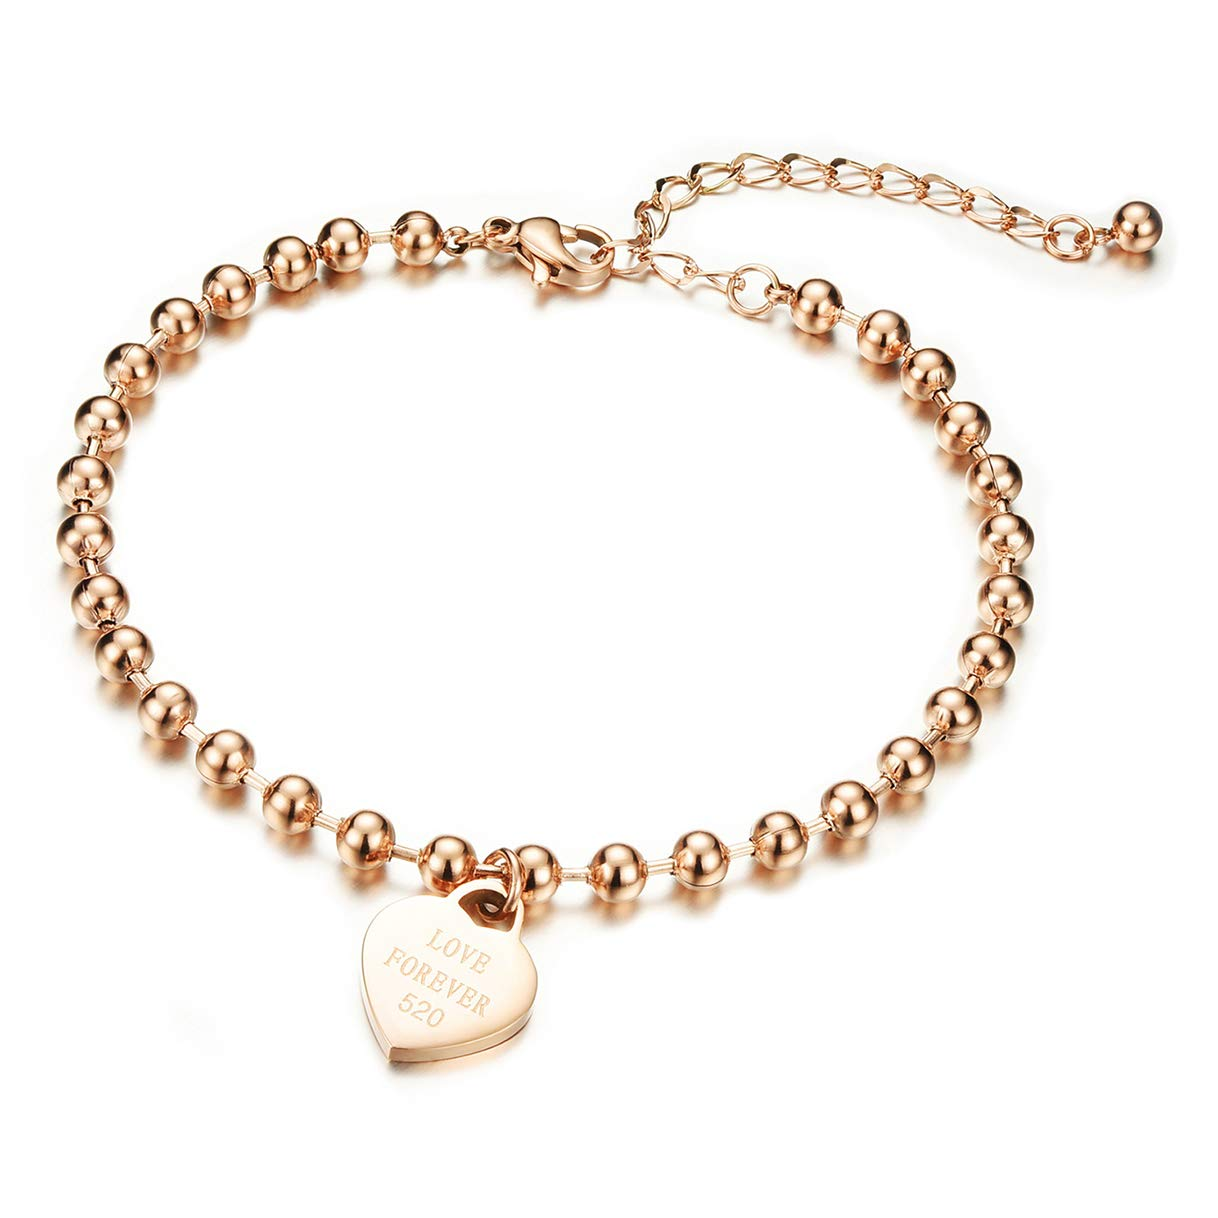 CHARMFAME Rose Gold Plated Stainless Steel Heart Anklet Love Forever Beaded Ankle Bracelet Fashion Foot Jewelry for Women /& Girls